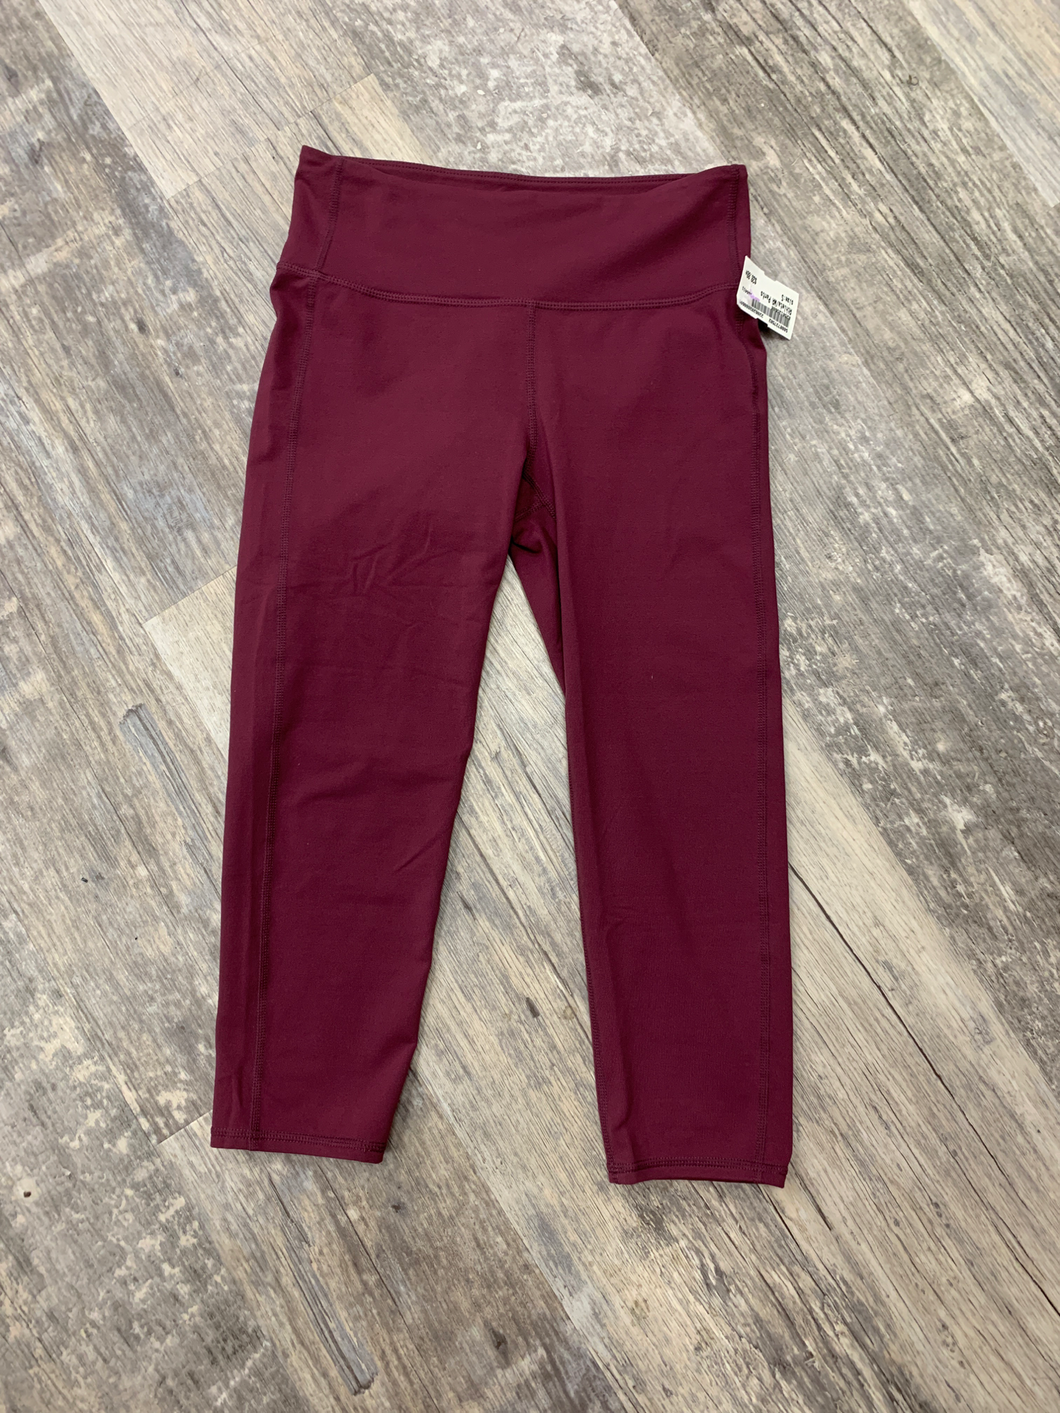 Athleta Athletic Pants Size Small